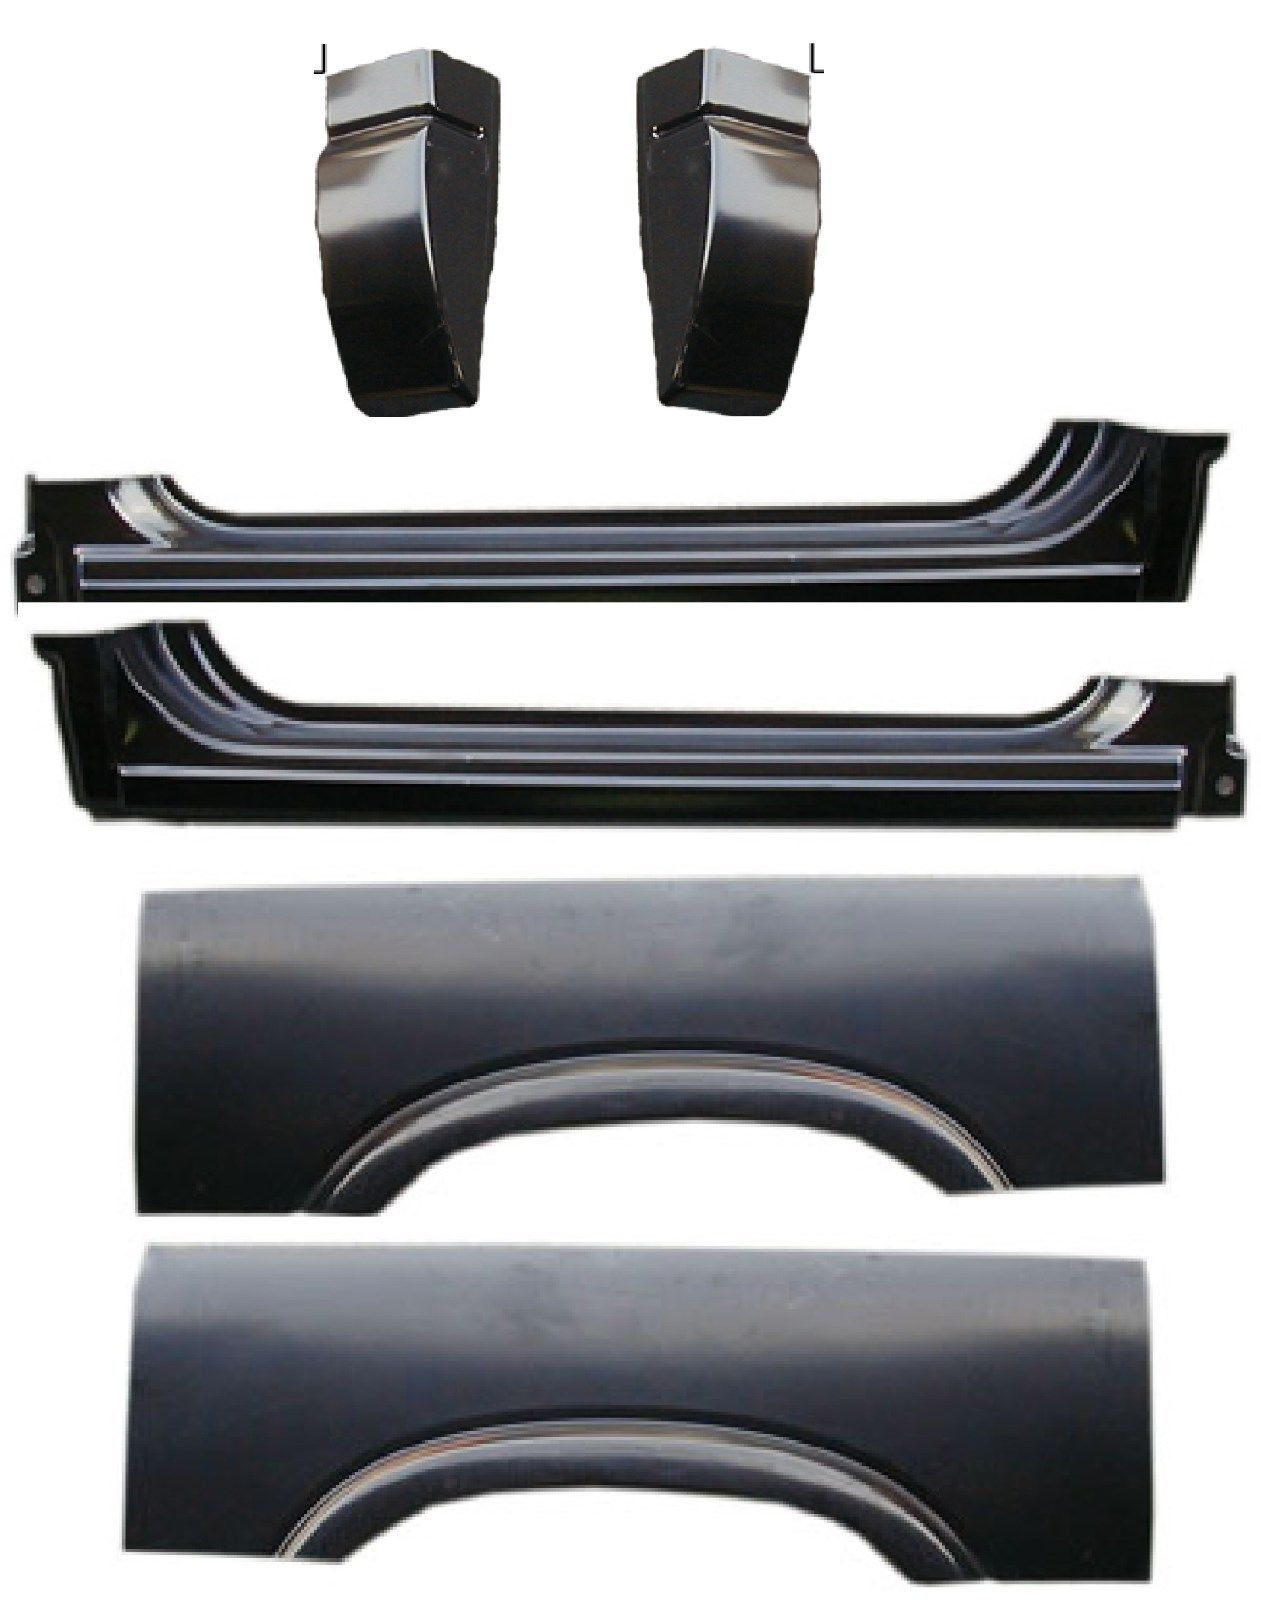 94-04 Chevy S10 6Pc Cab & Arch Kit